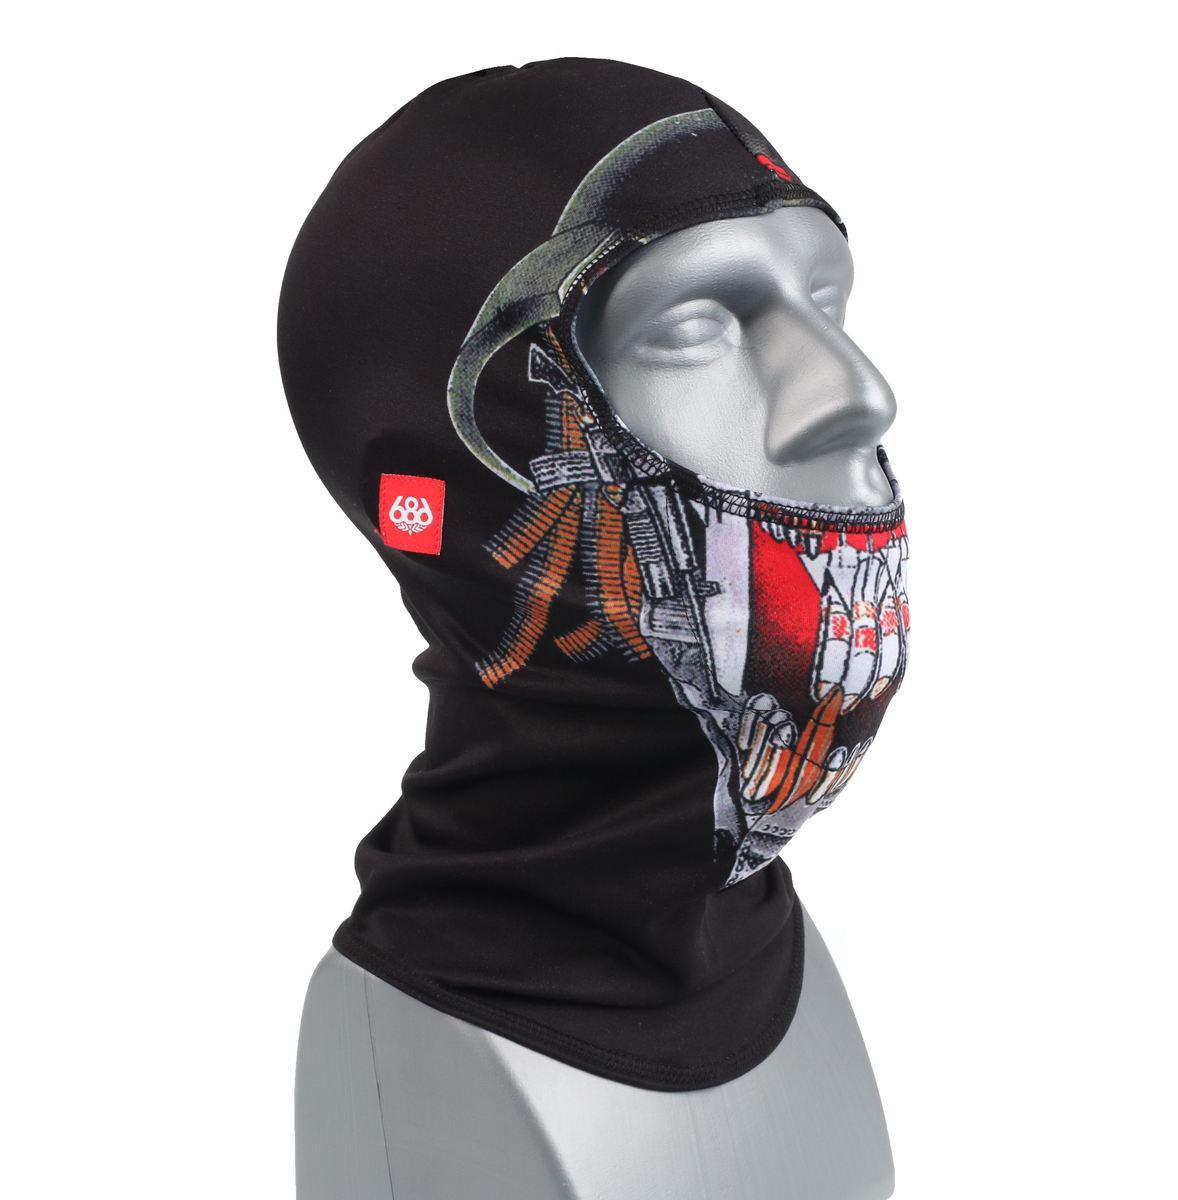 kukla Slayer - Granite Balaclava - Black - 686 - L9WFMSK04